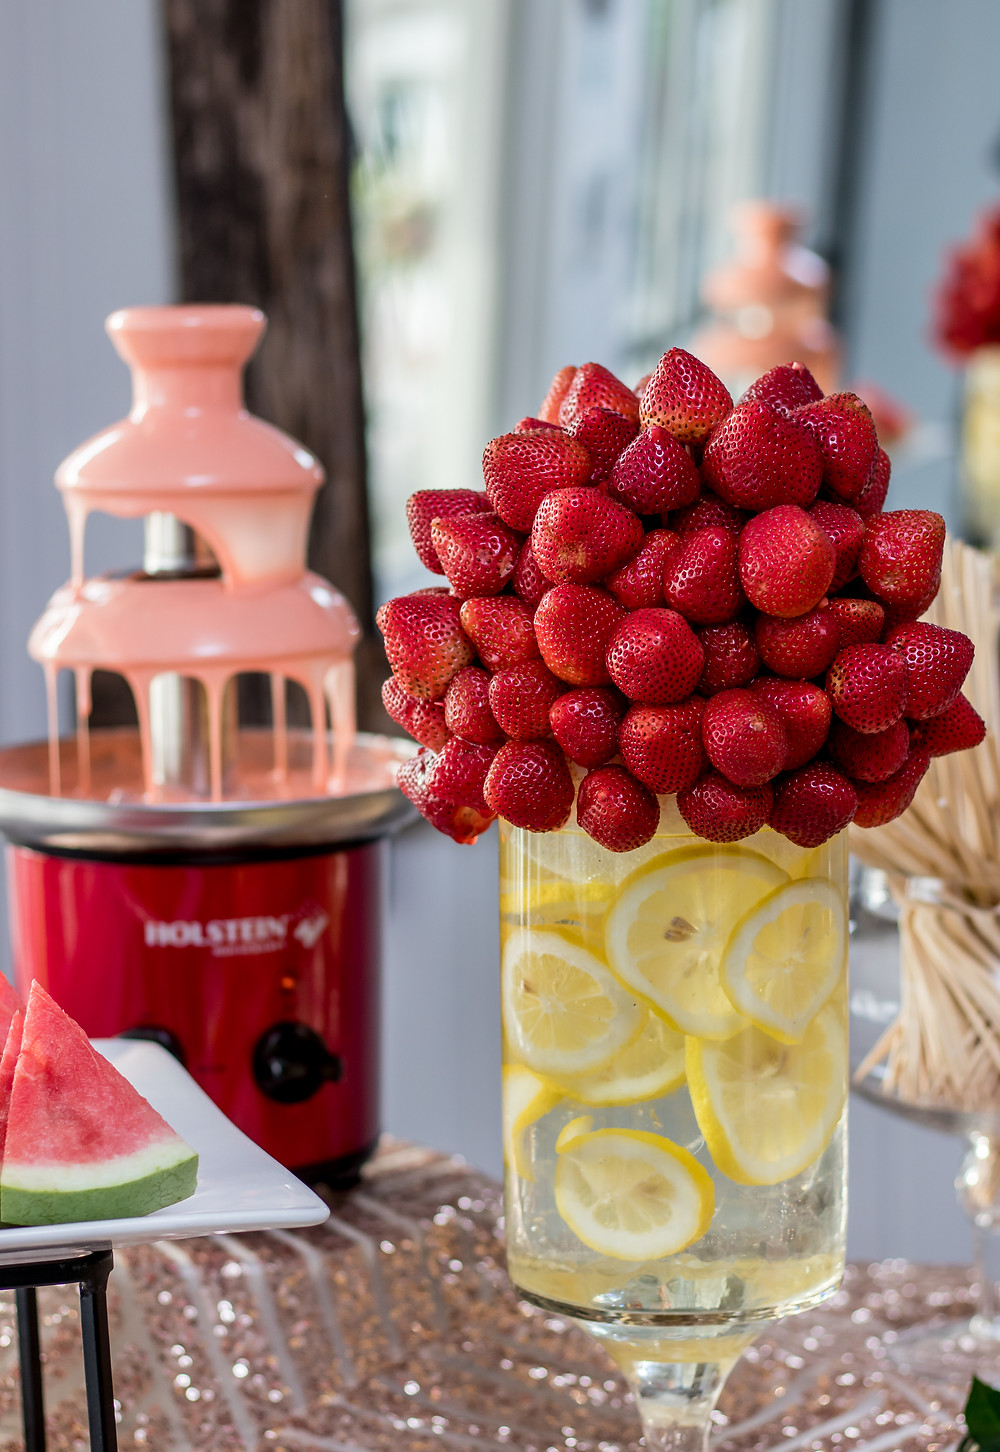 Chocolate fountain display featuring fresh strawberry vase